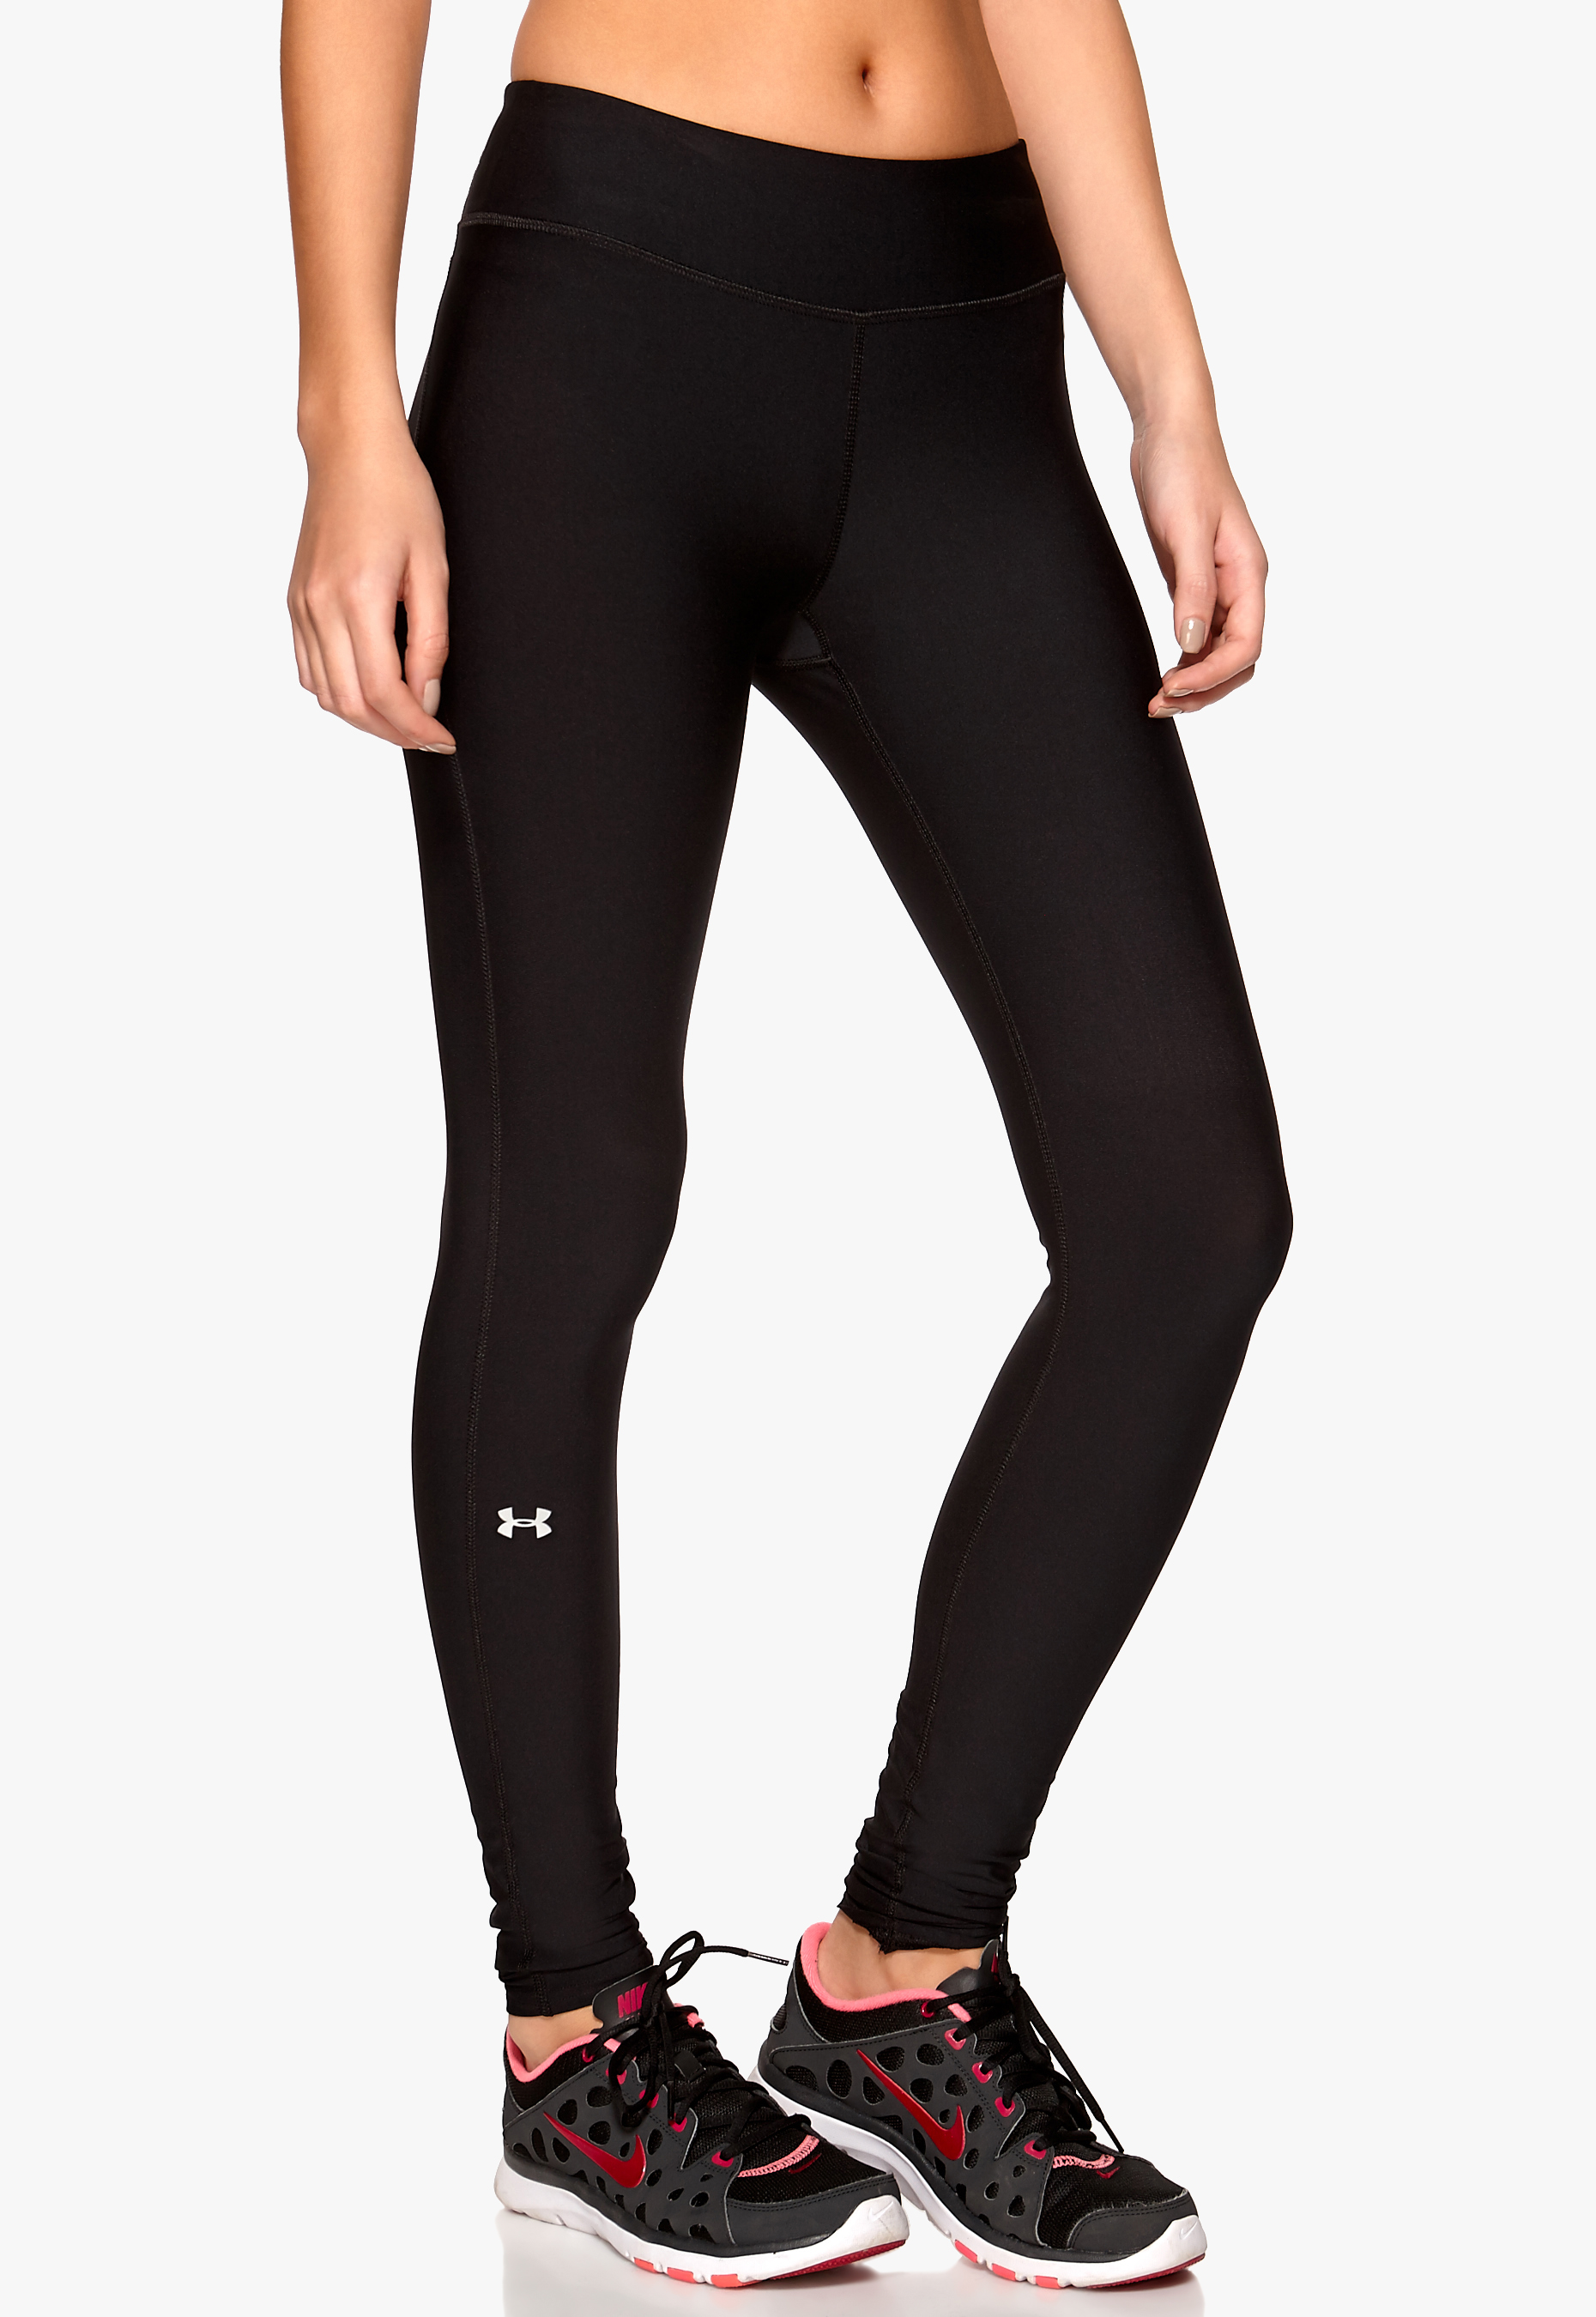 Under Armour Armour Leggings Black - Bubbleroom